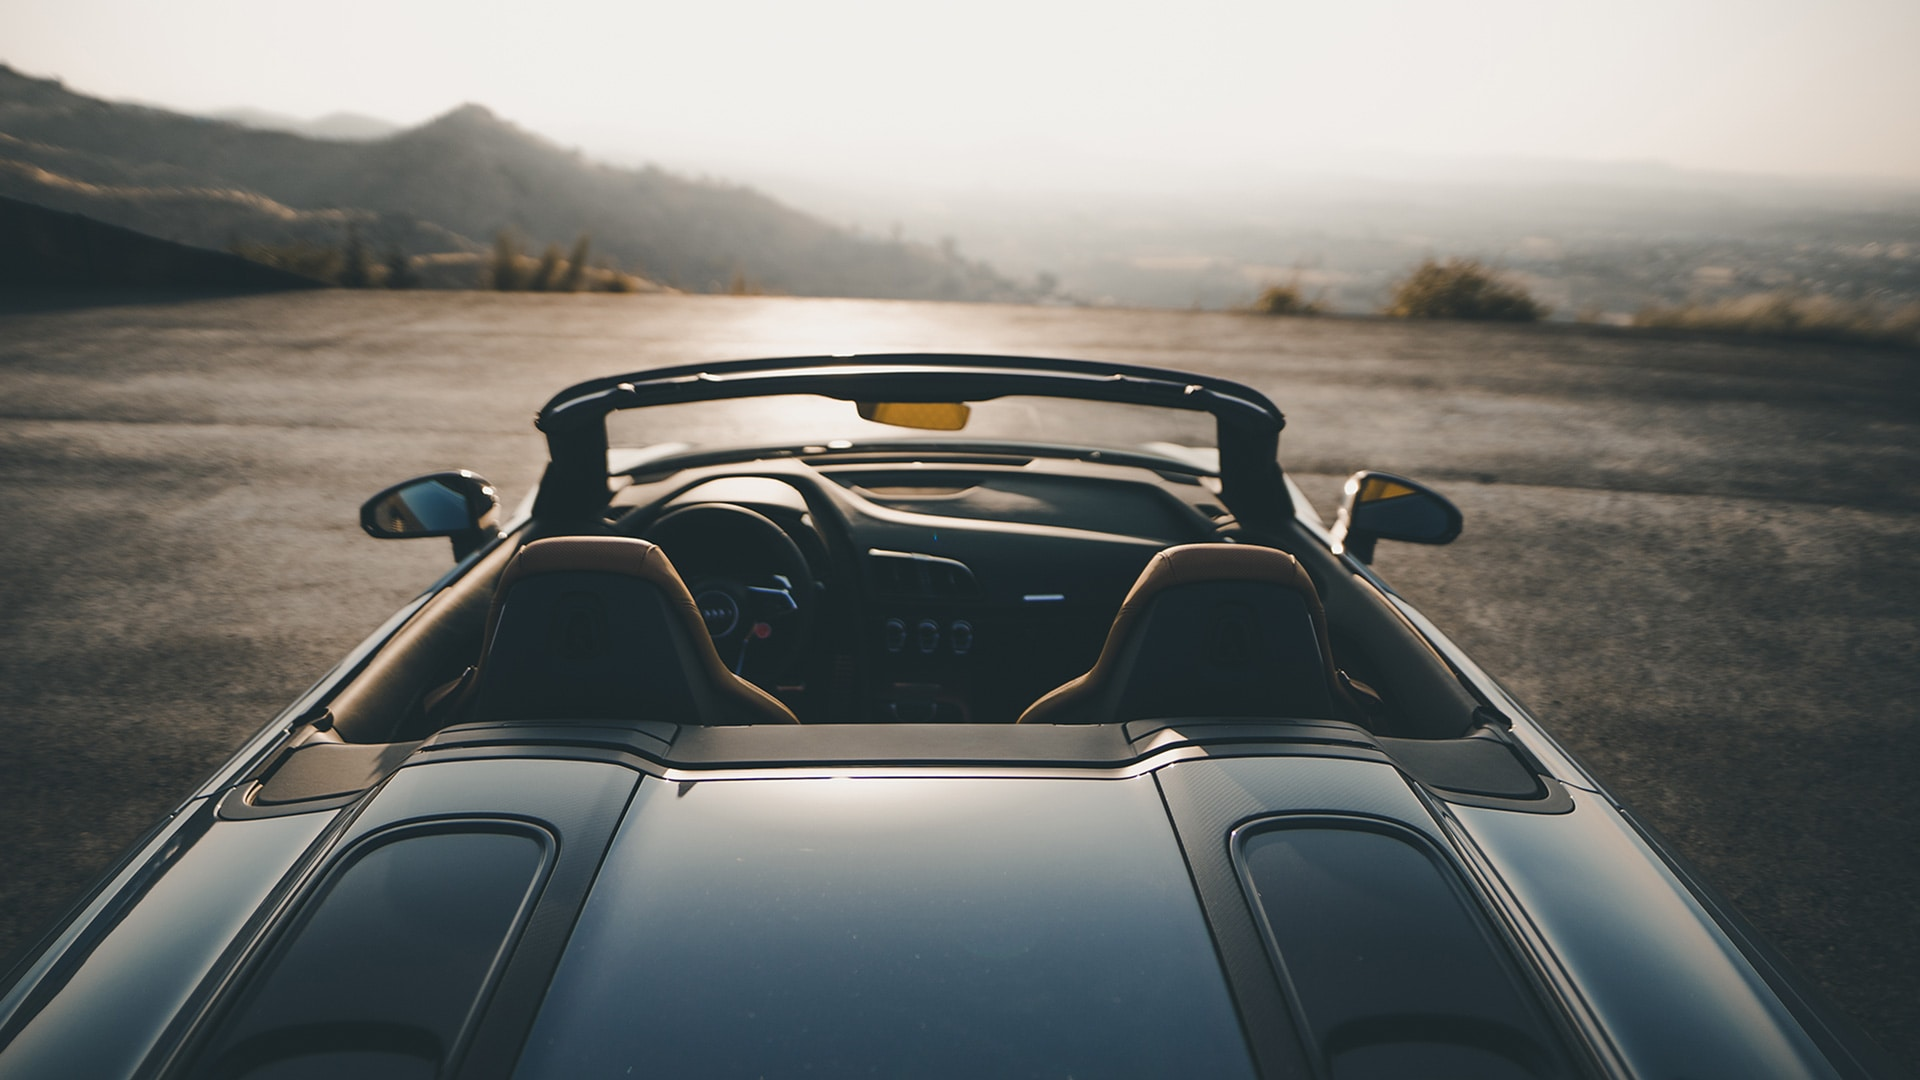 The R8 Spyder has a lightweight soft top which tapers into two fins. These stretch the cloth so that it harmonizes perfectly with the athletic design of this high-performance sports car, in much the same was as the large CFRP hood compartment cover does.